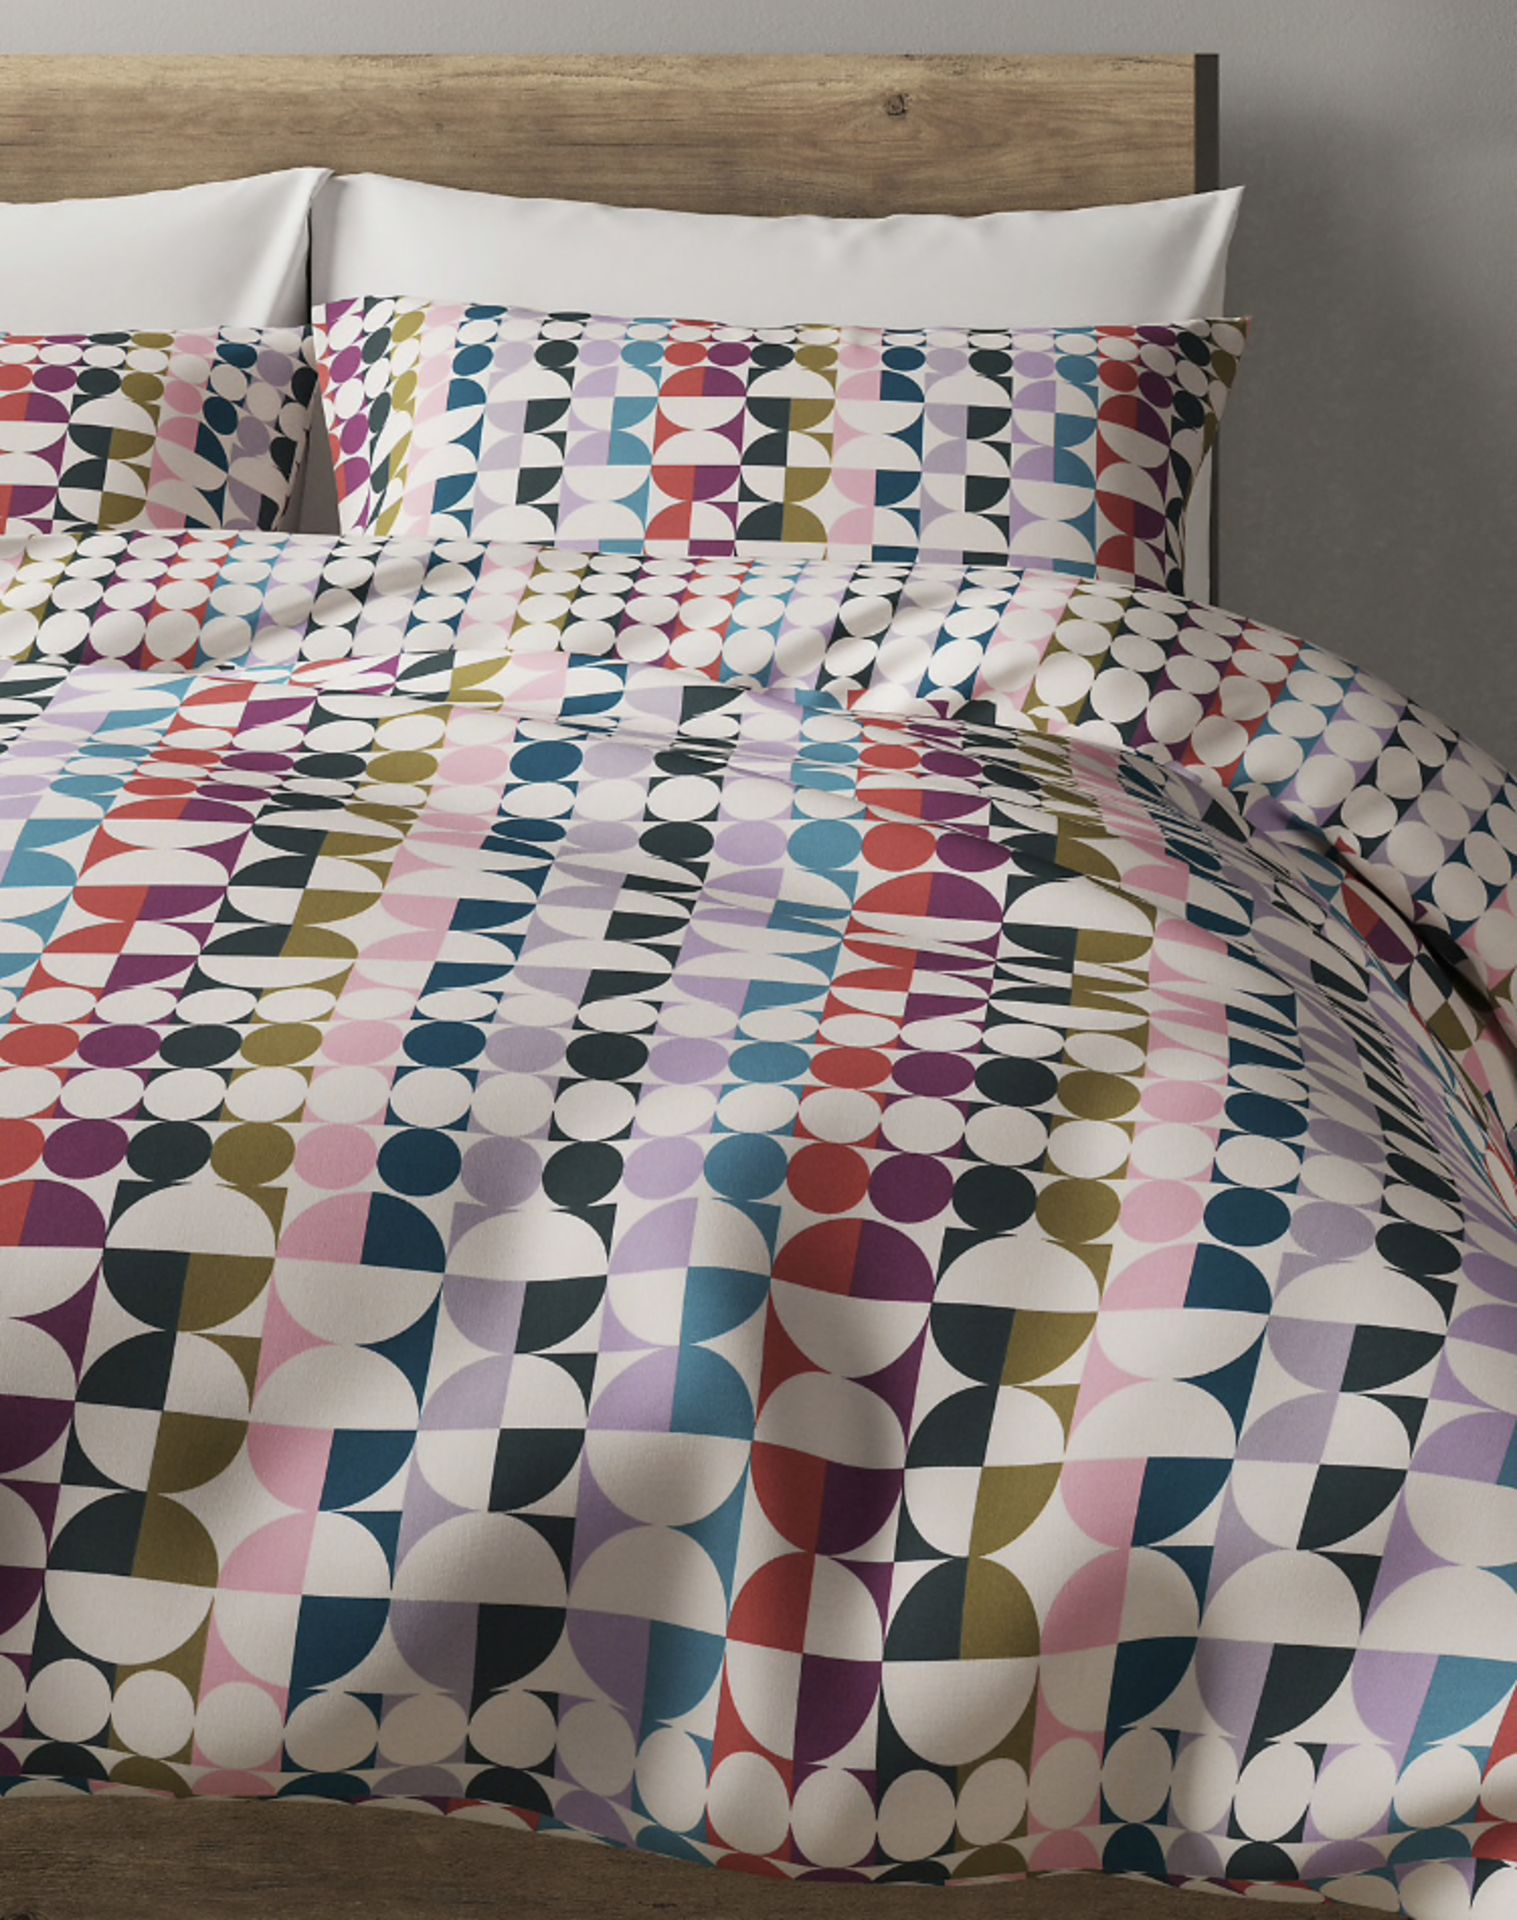 Lot 58 - Cotton Rich Percale Spot Printed Bedset, Super King